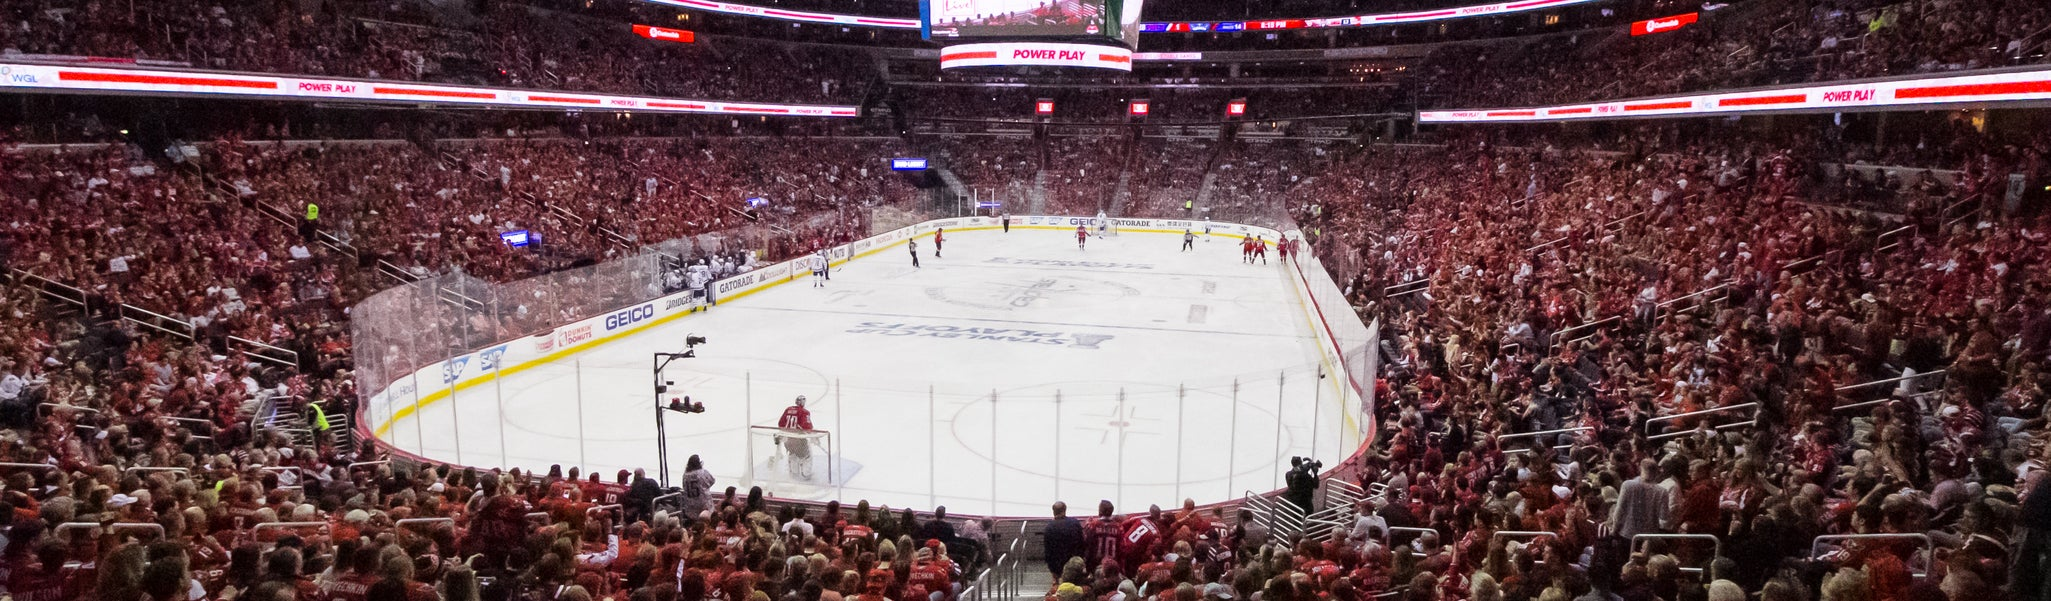 Seat view from LL Preferred 107 at Capital One Arena